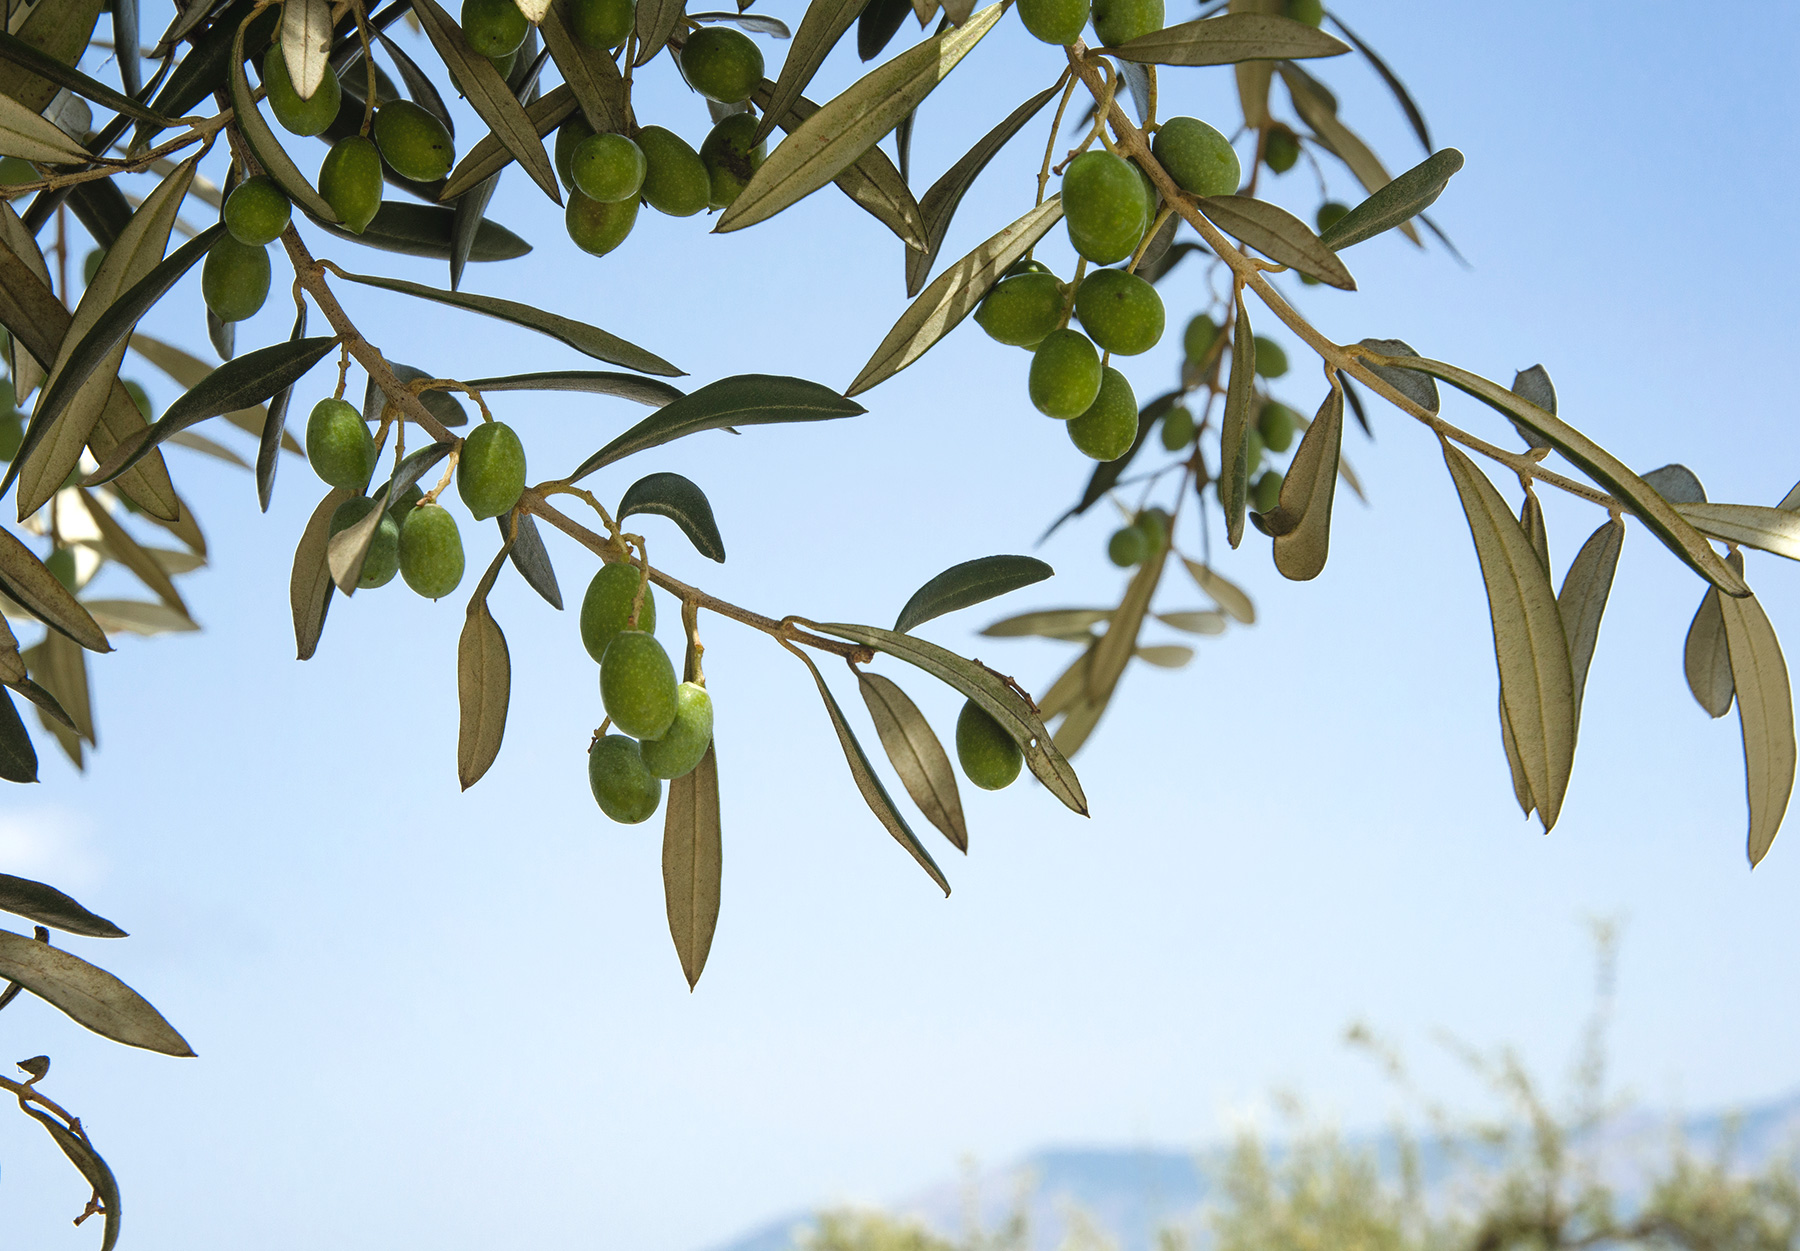 Green olives on tree